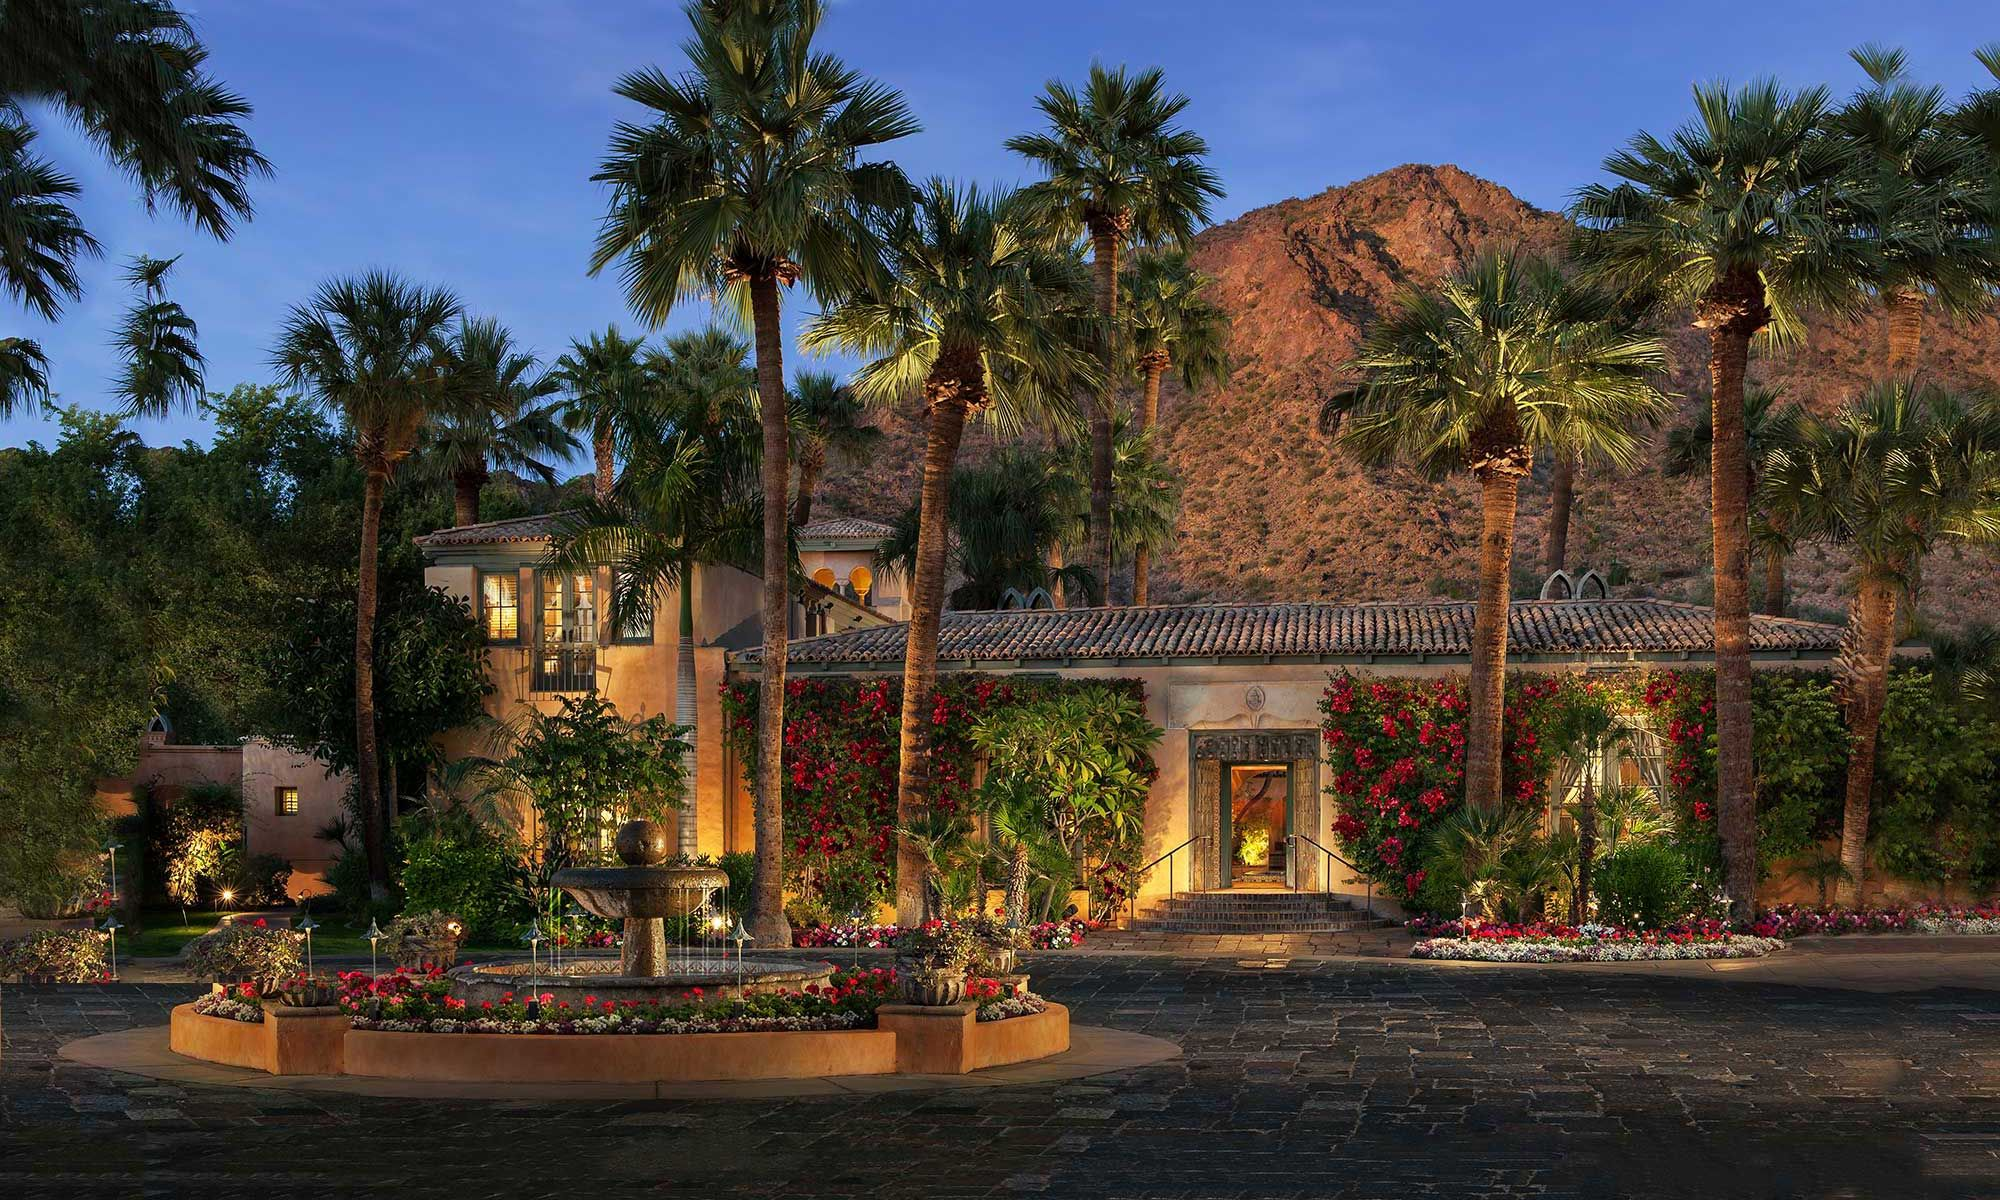 Royal Palms Resort And Spa Is A Luxury Phoenix Arizona That Offers The Intimate Atmosphere Of Luxurious Private Residence